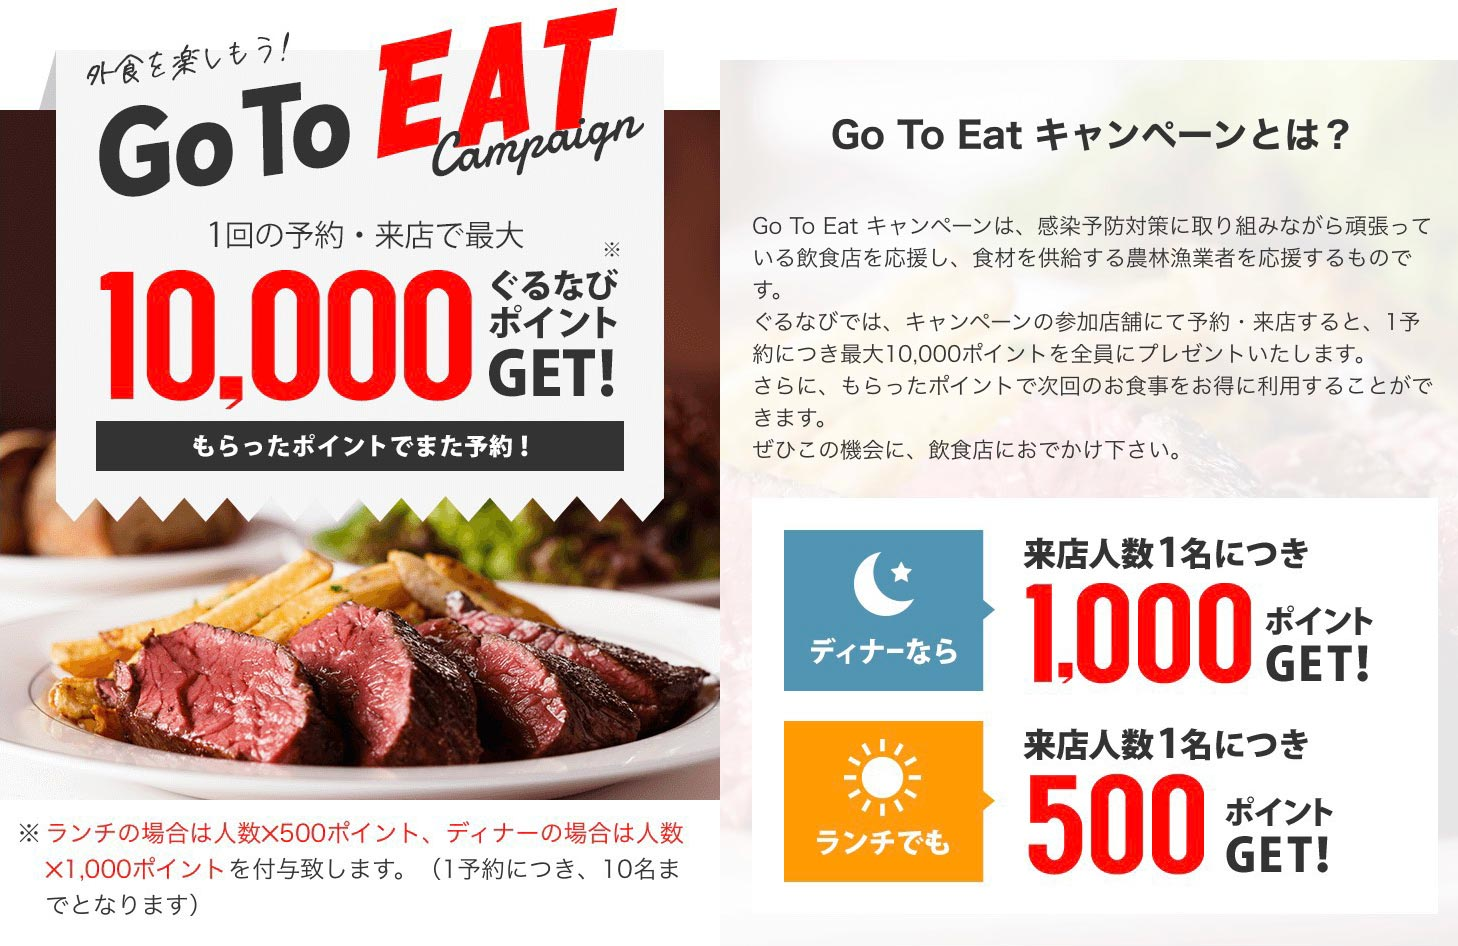 Let's GO TO EAT!